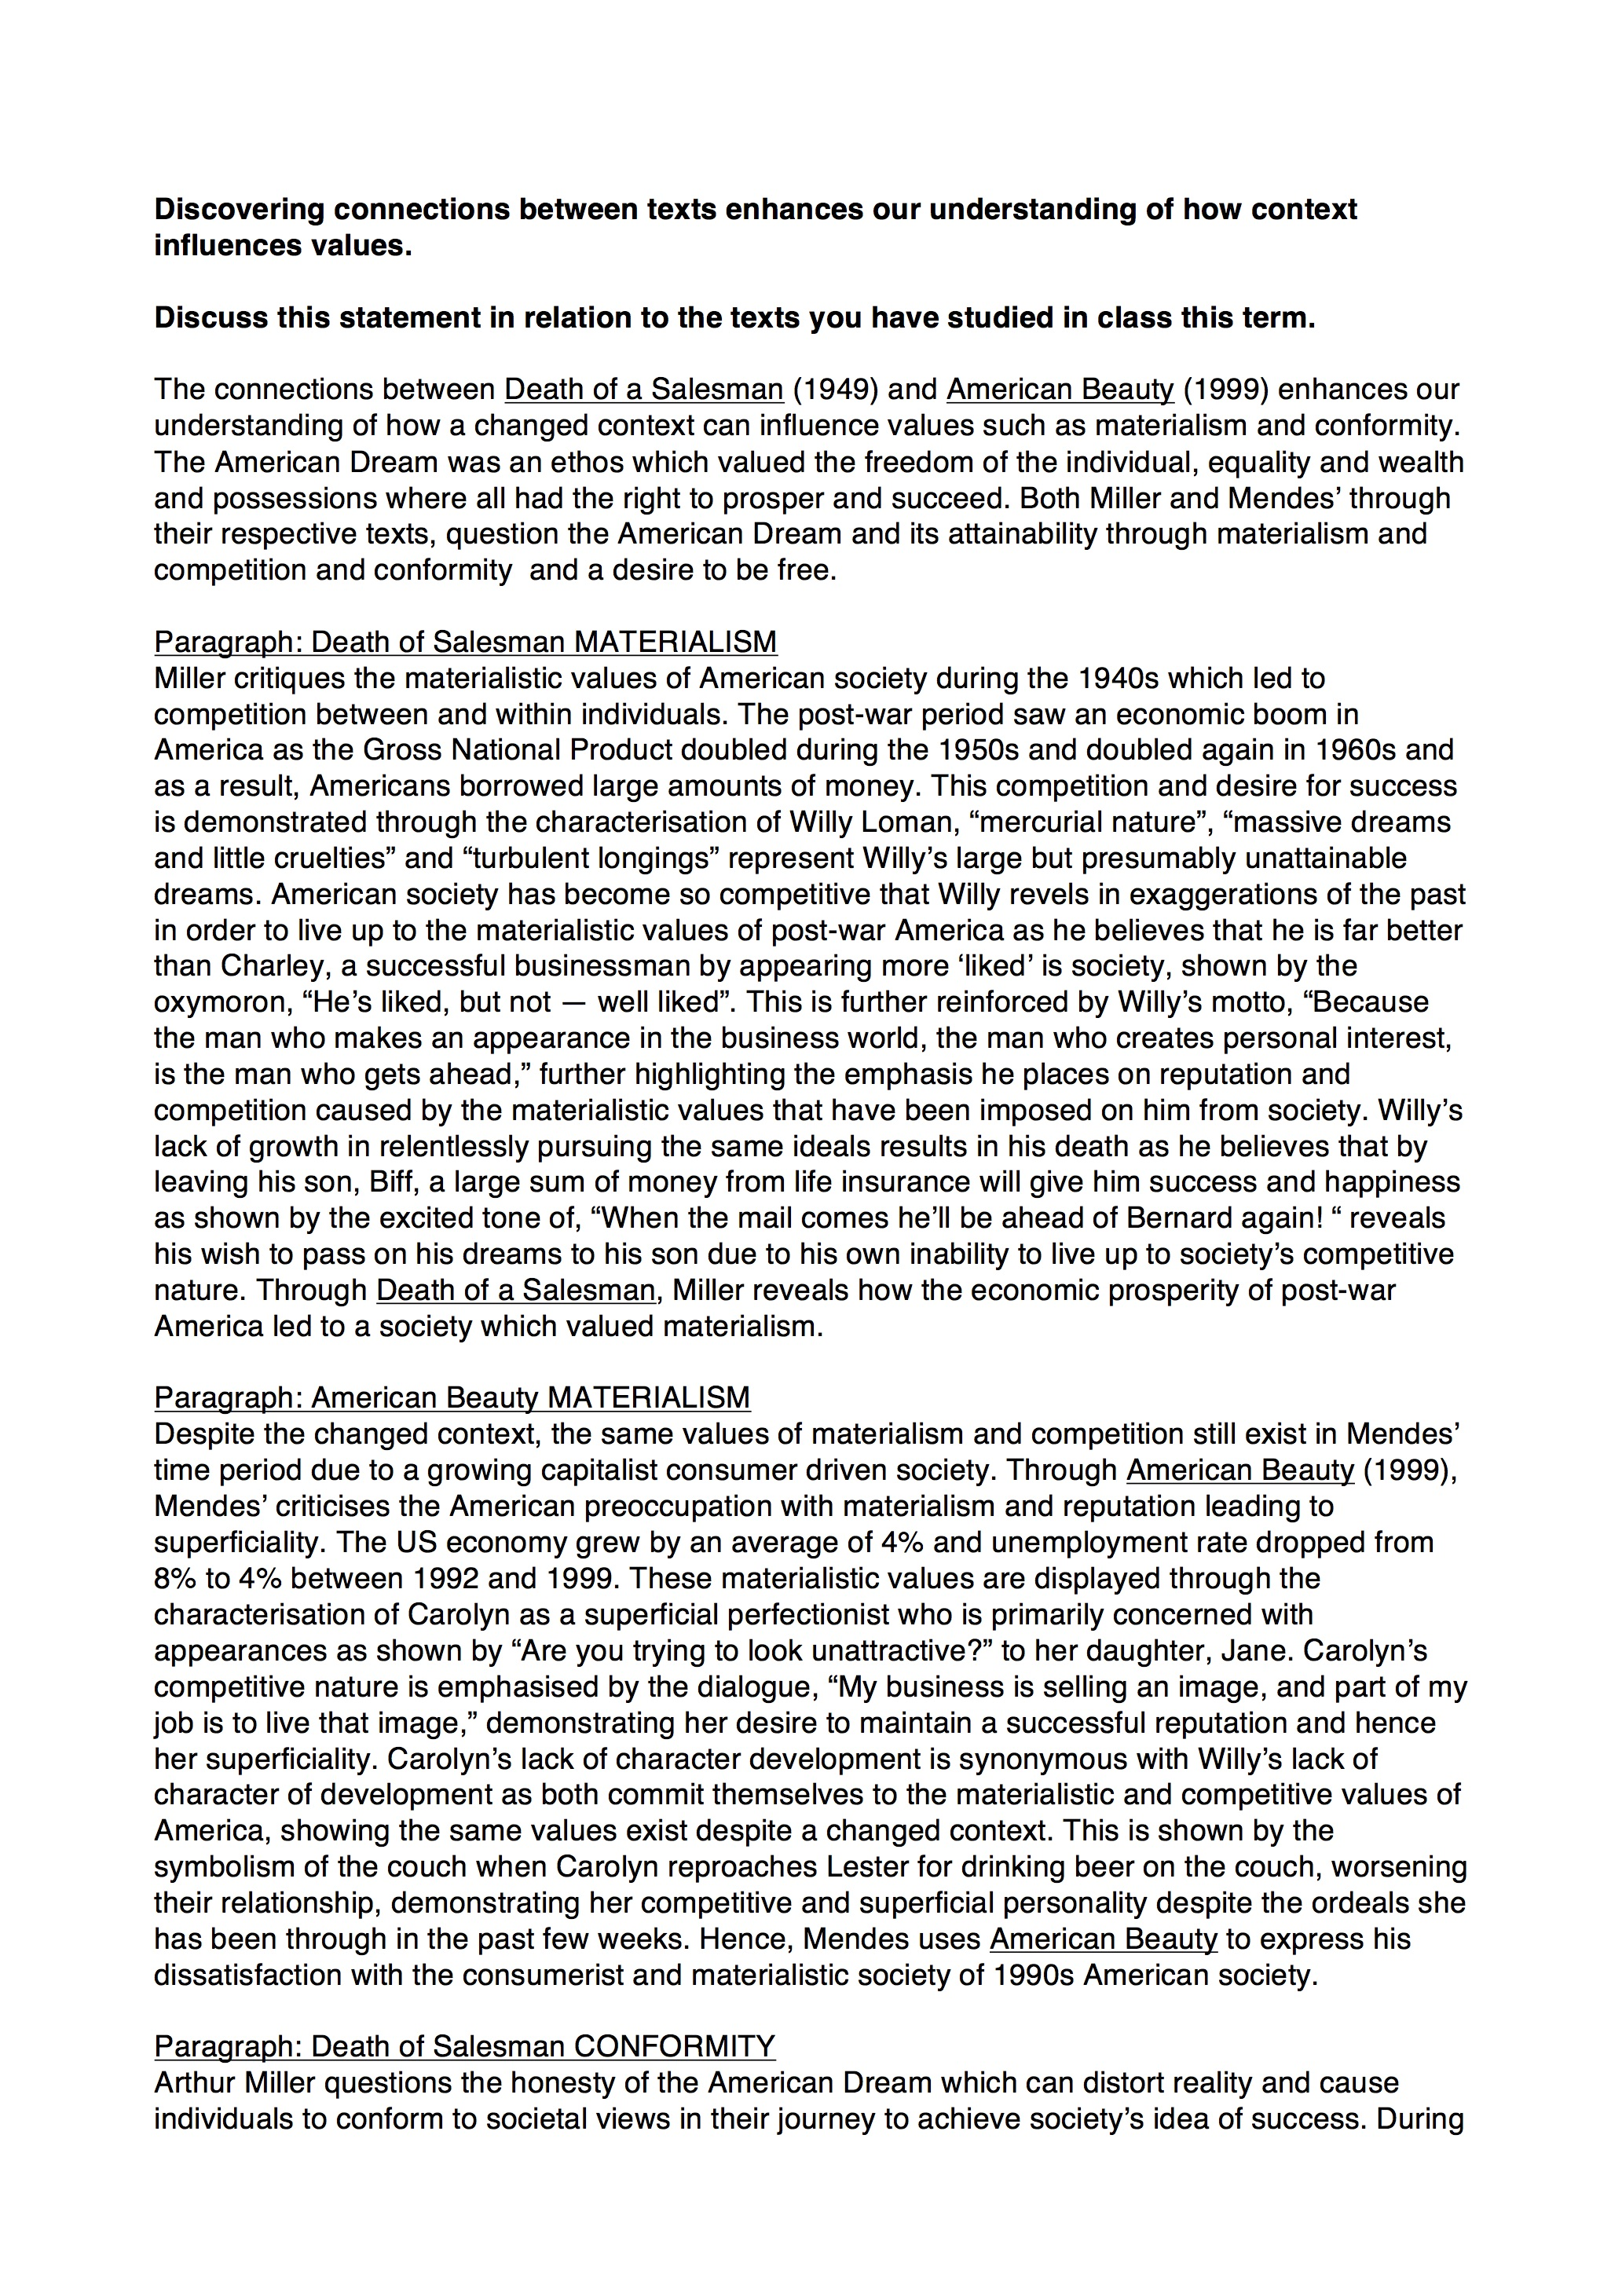 005 3720257487merican Beauty Death Salesman Essay Example Of Phenomenal A Topics Outline Introduction Full